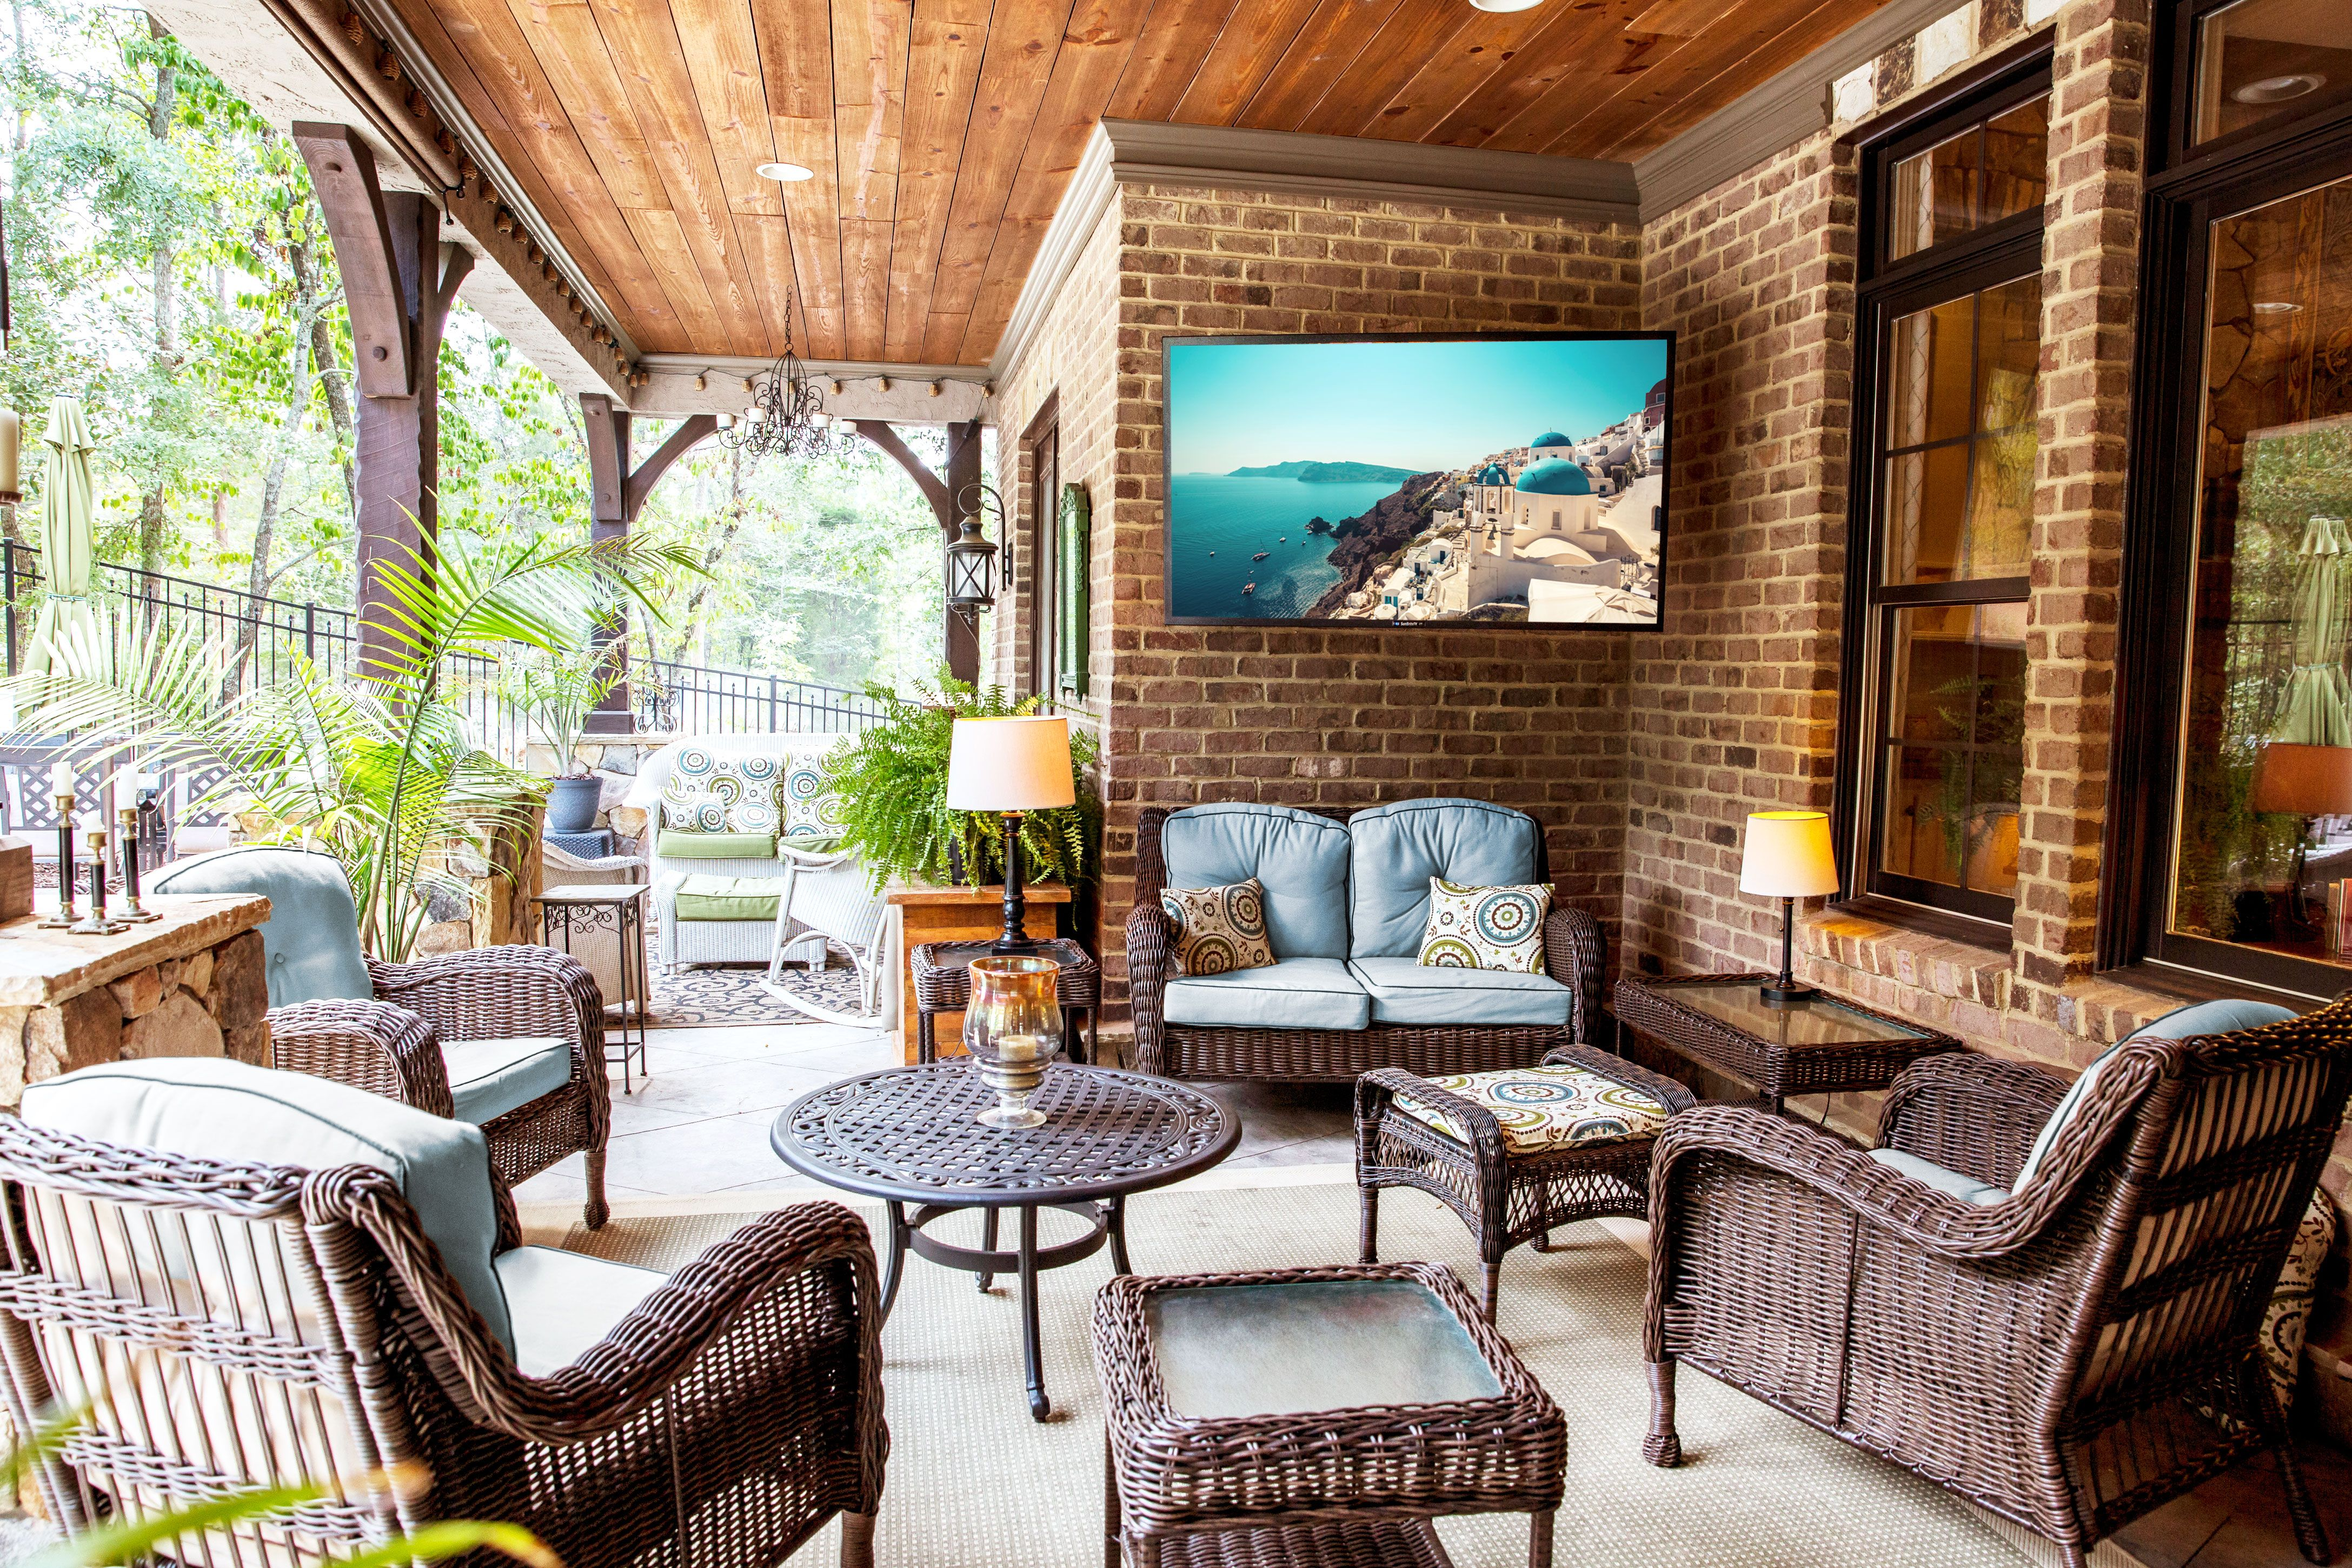 You Can Now Watch Netflix Outside With This Weatherproof, Anti-Glare Outdoor TV